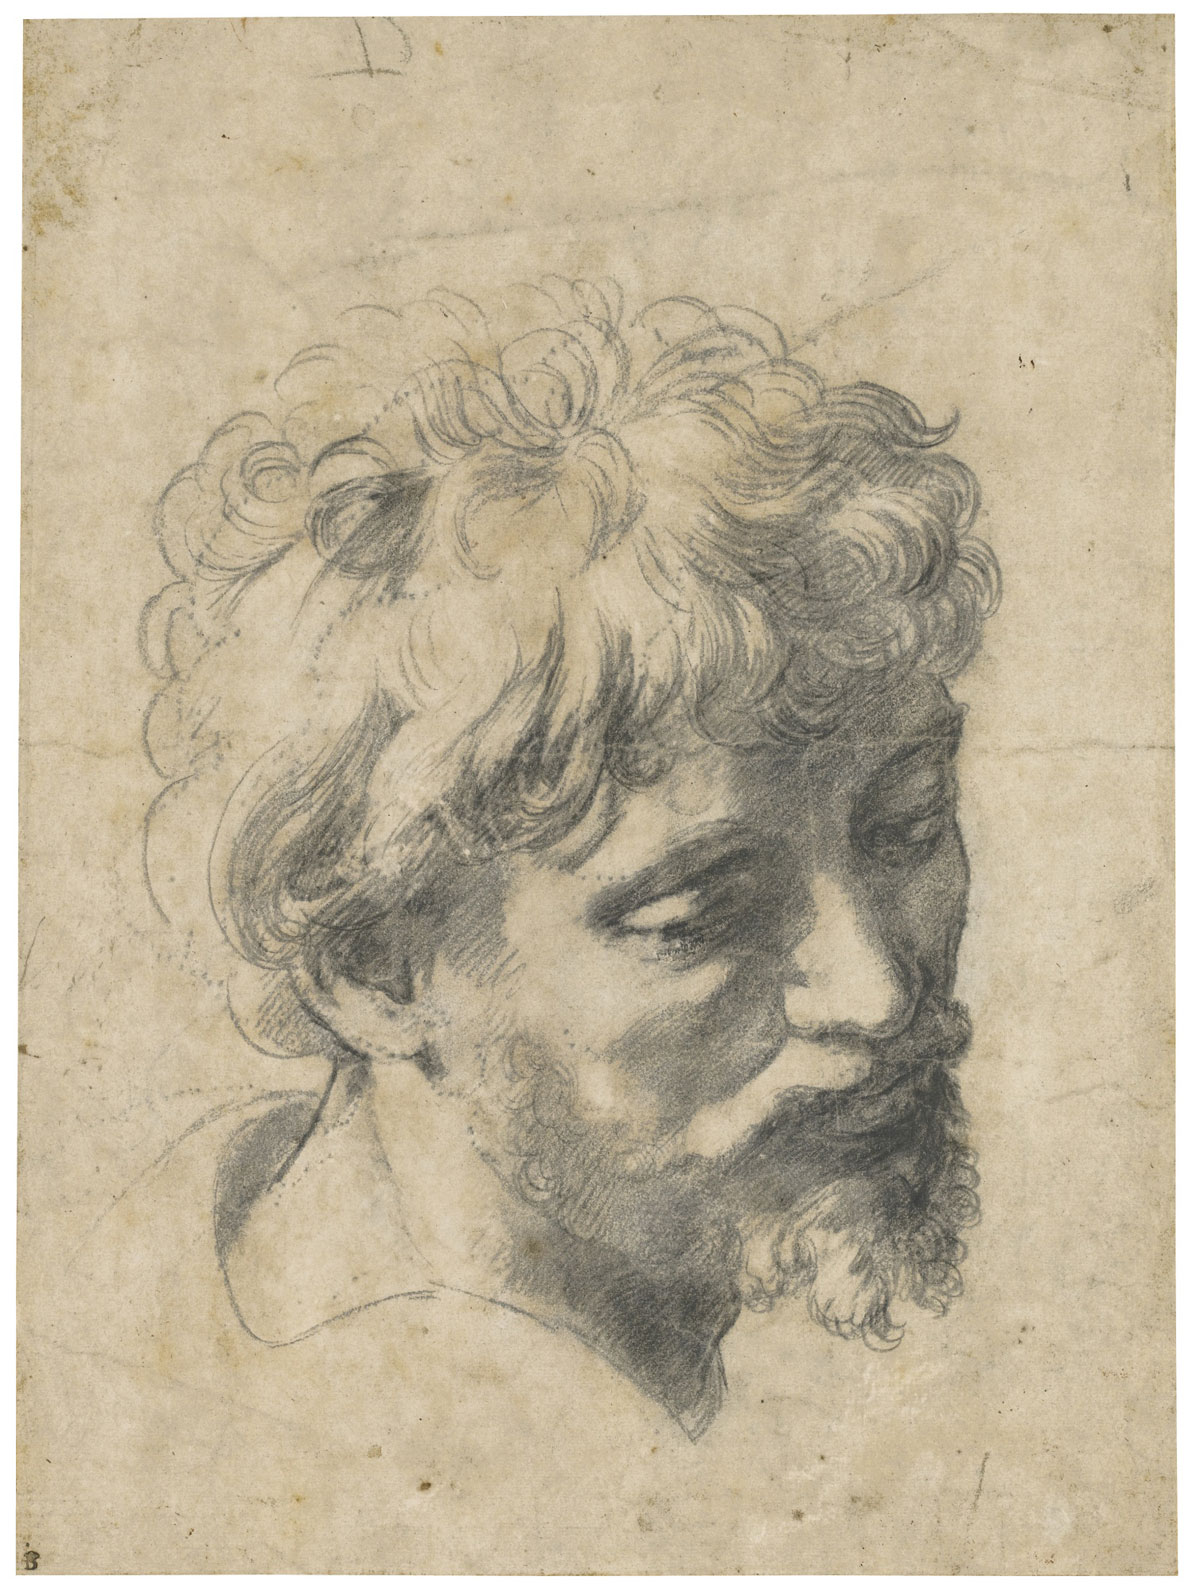 Head of a Young Apostle (c. 1519-20) which achieved a record price for the artist at auction when it sold for £29.7 million, the second highest auction price for any Old Master work of art.